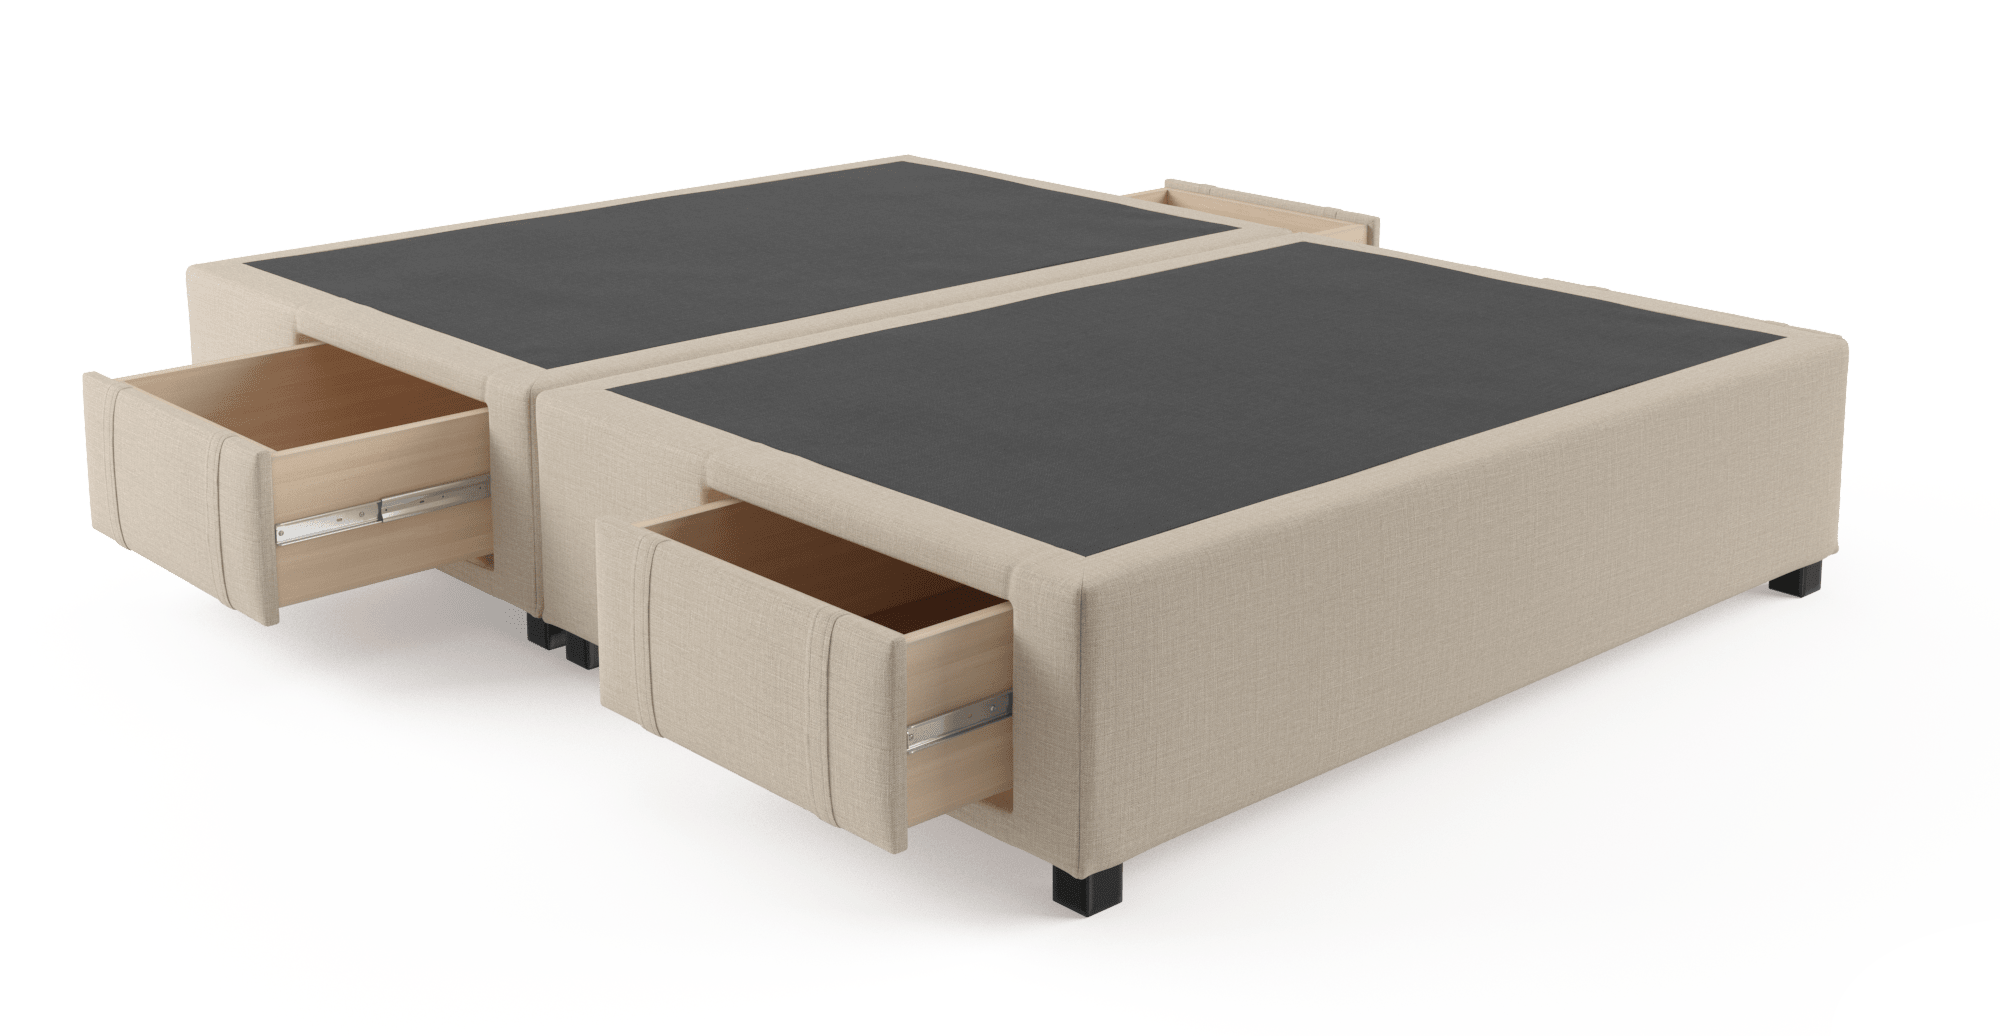 Queen Bed Frame With Storage.Queen Size Upholstered Bed Base With Drawers